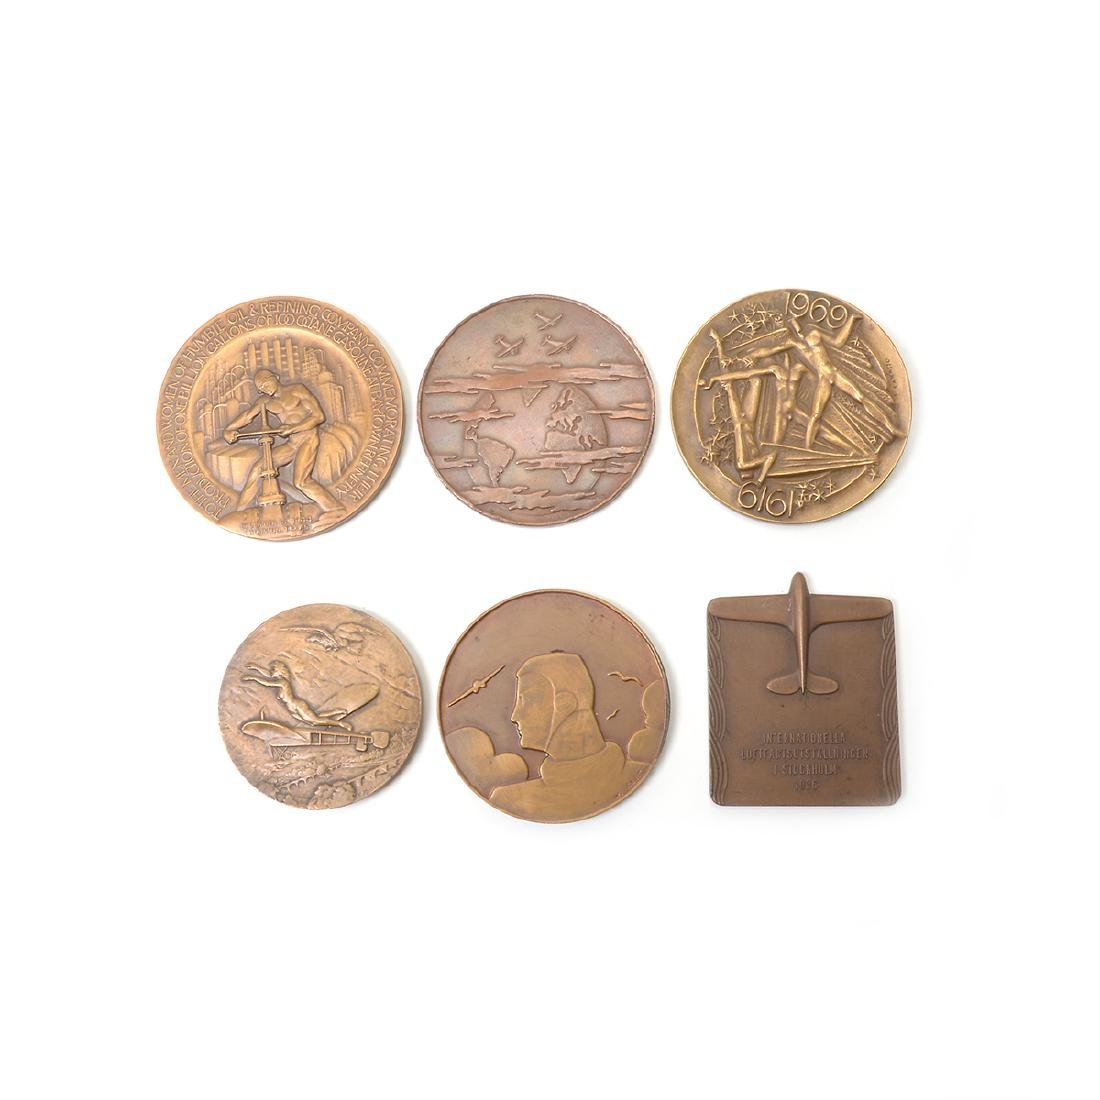 Group of Vintage Aviation Related Medals - 4